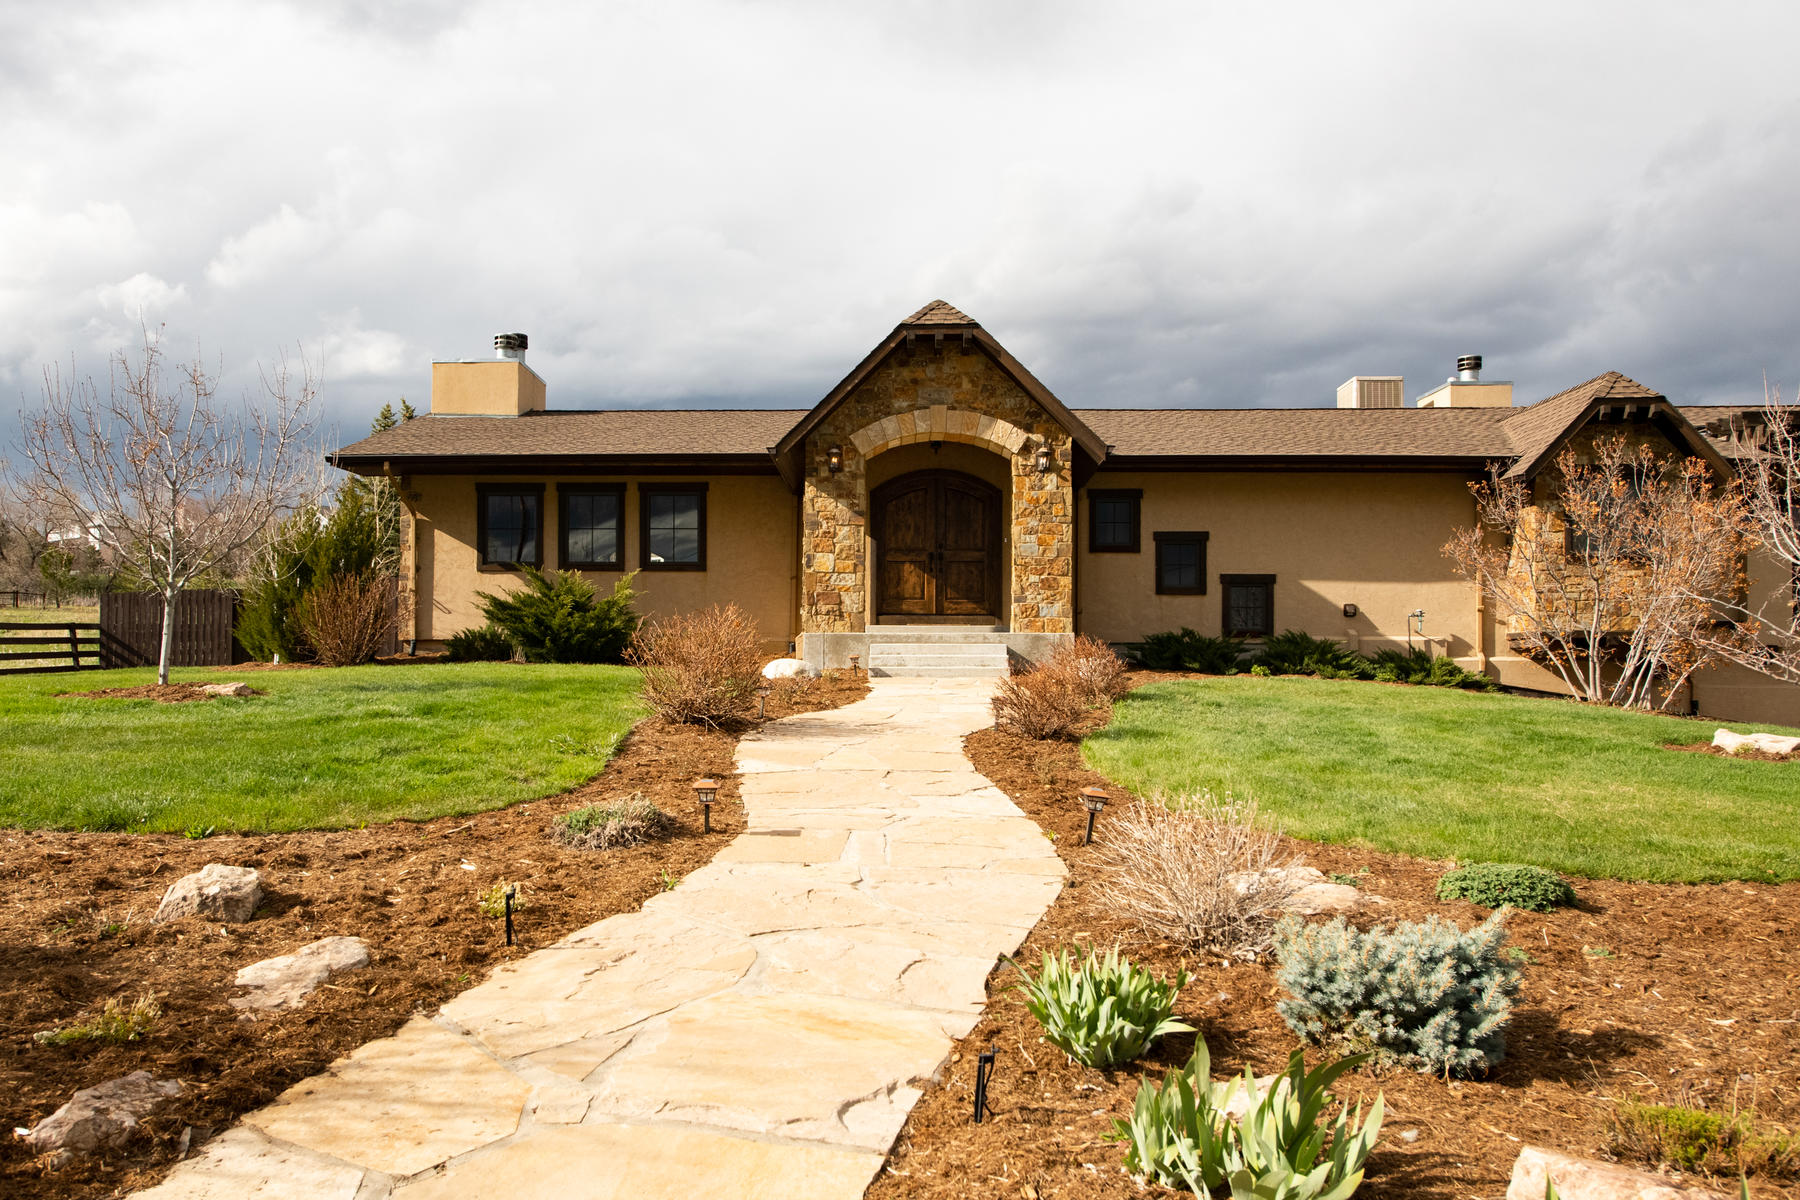 Single Family Homes for Sale at Gorgeous Updated Ranch With Room To Breathe 8005 W 108th Ave Broomfield, Colorado 80021 United States